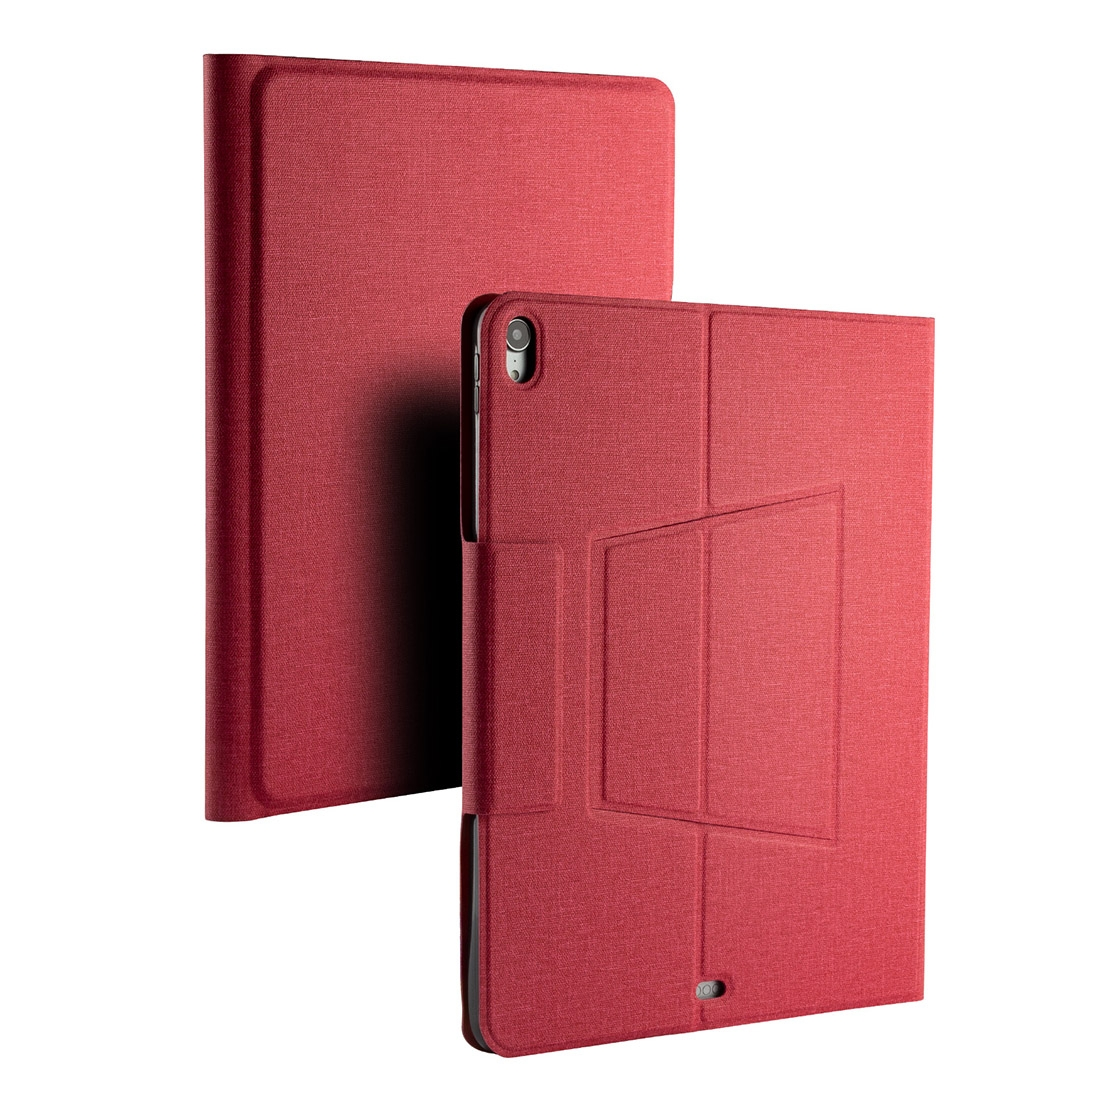 iPad Pro 12.9 Case With Keyboard & Backlite With Leather Flip Case for iPad Pro 12.9 (2018) (Red)